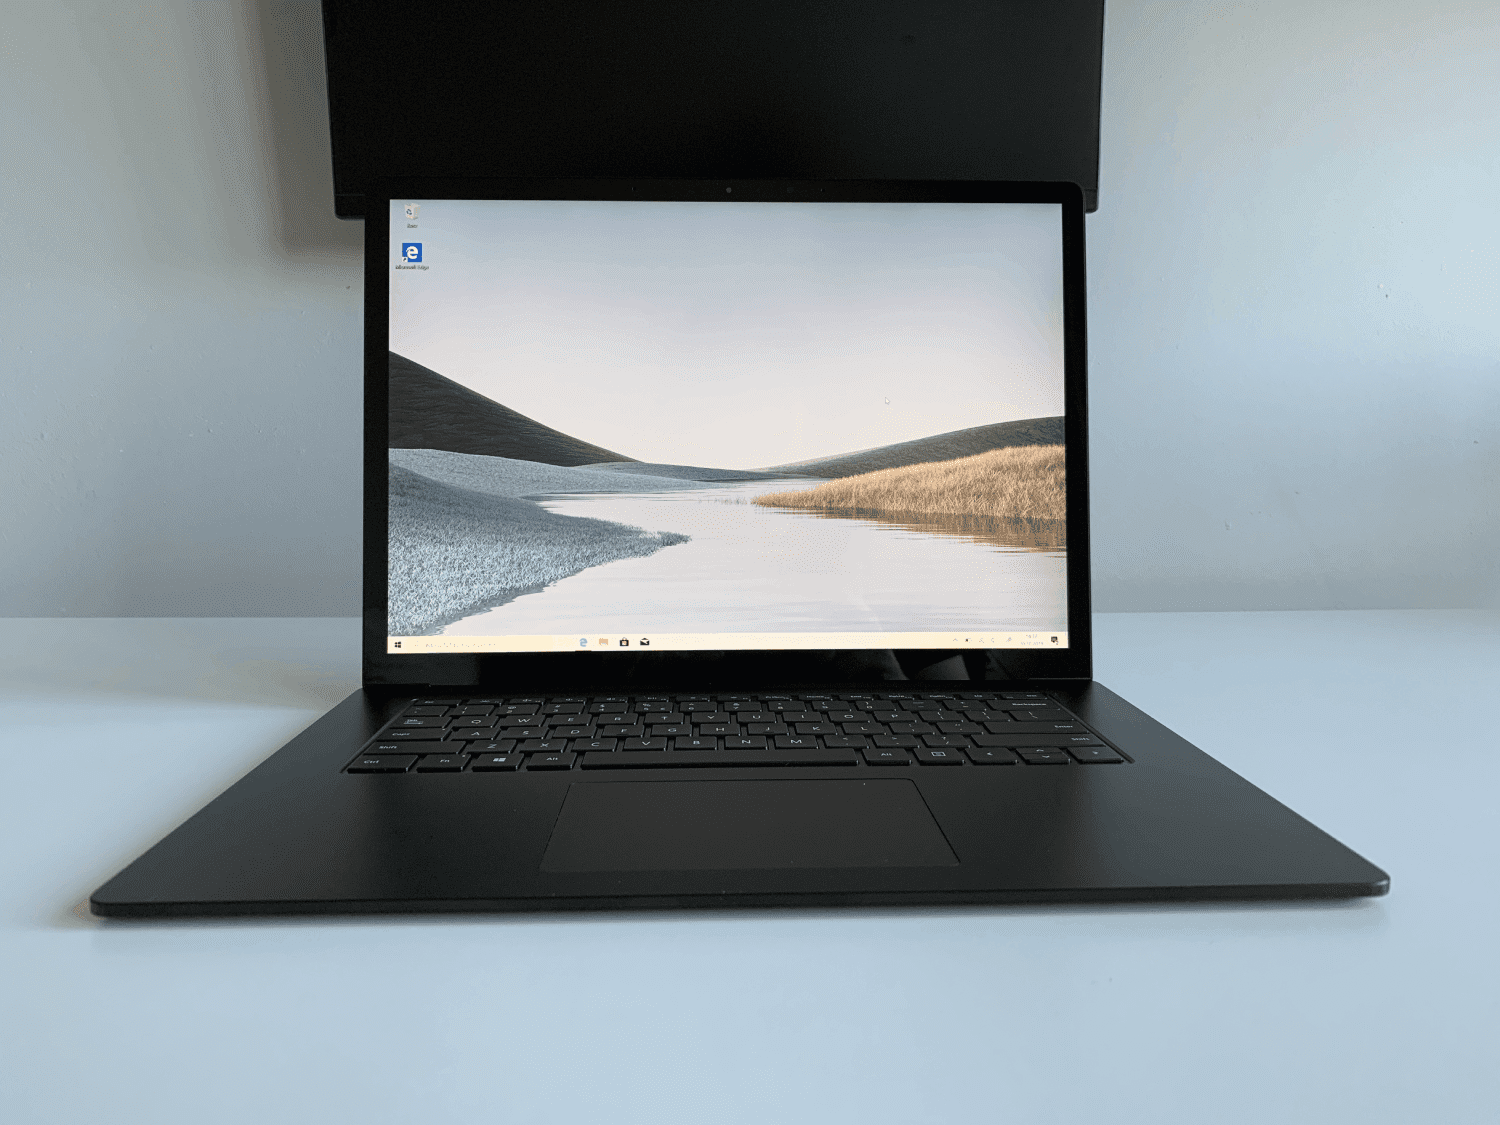 15 calowy surface laptop